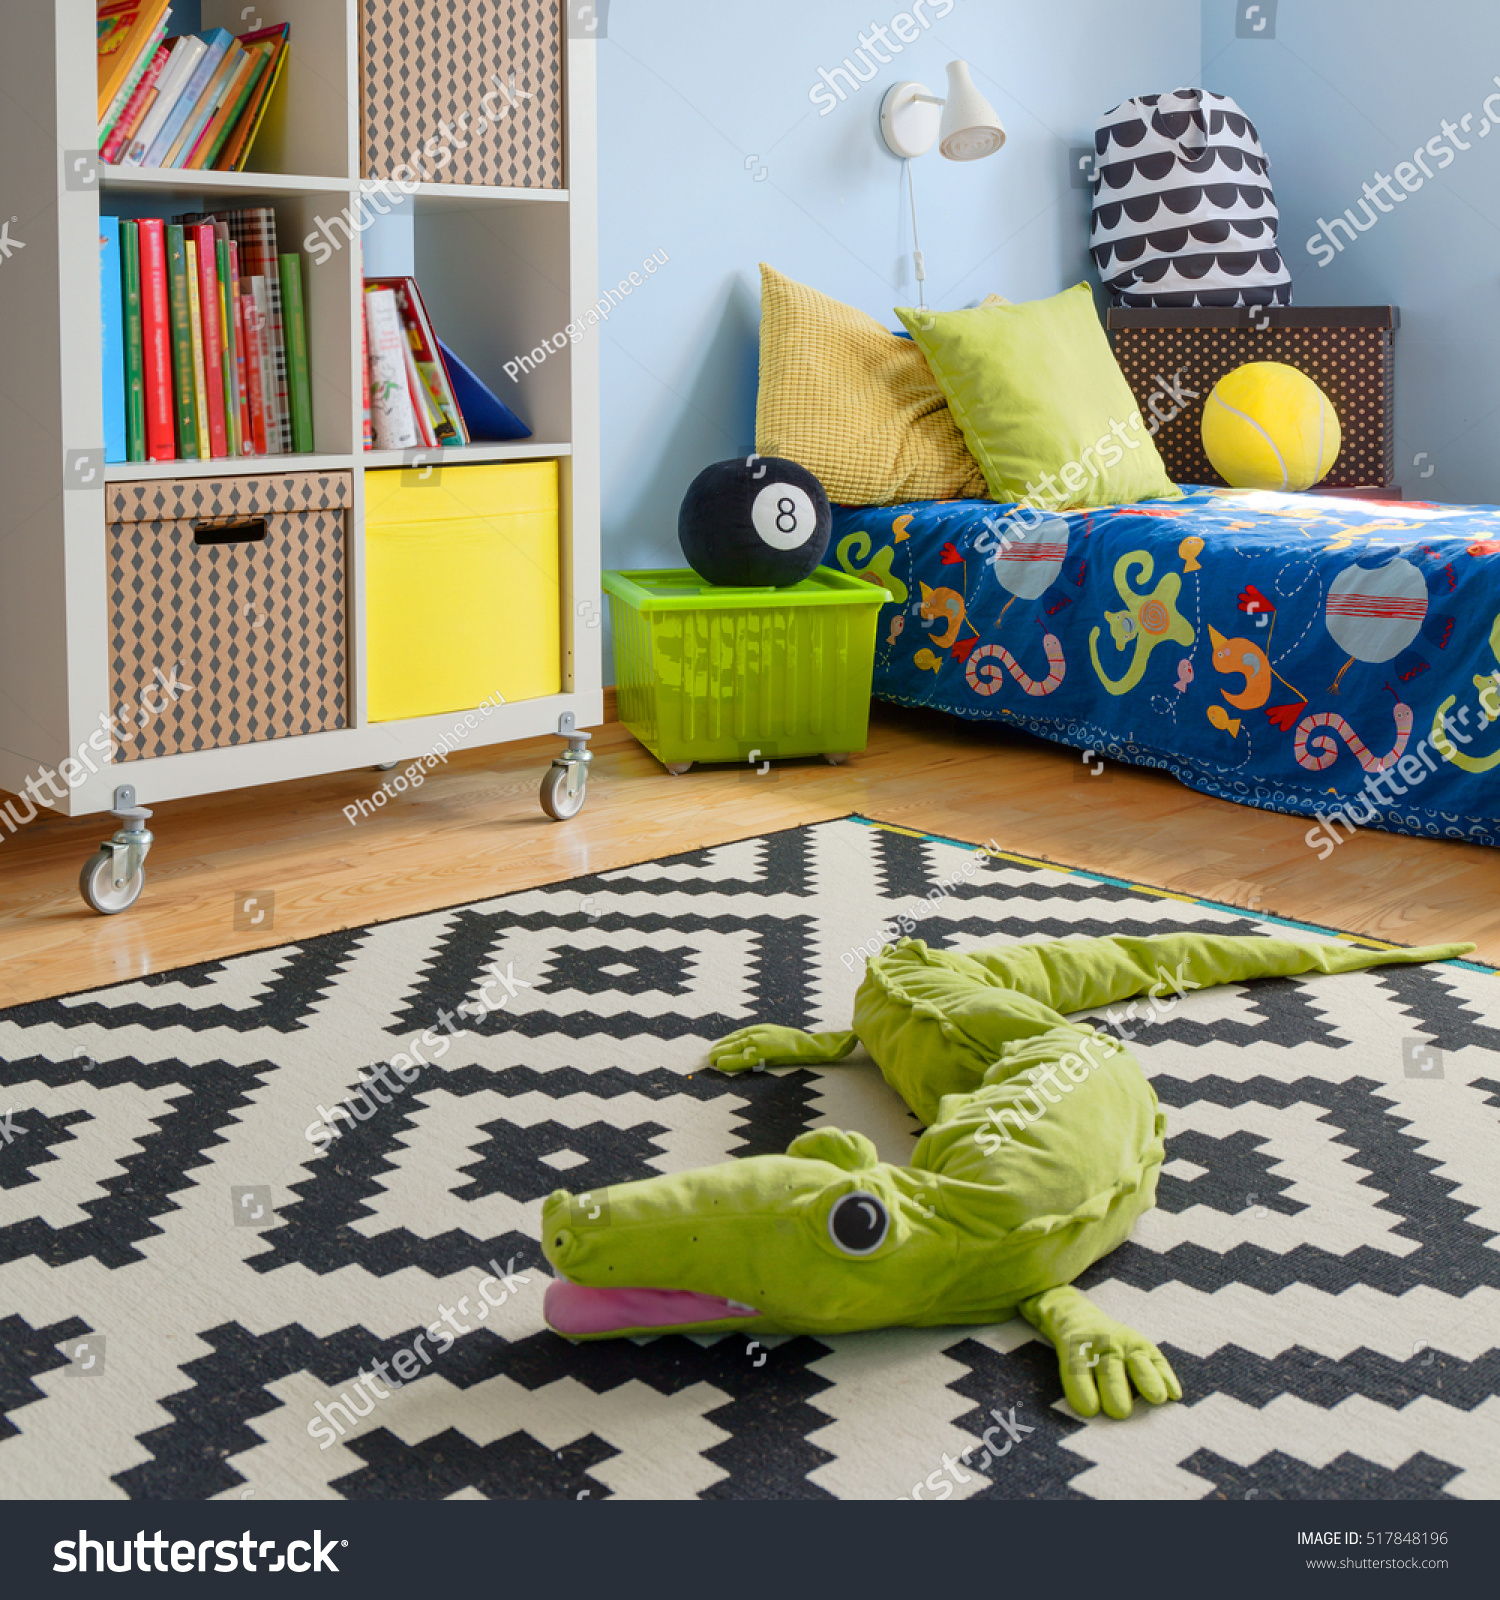 Shot of a modern colorful children's room with crocodile toy on the floor